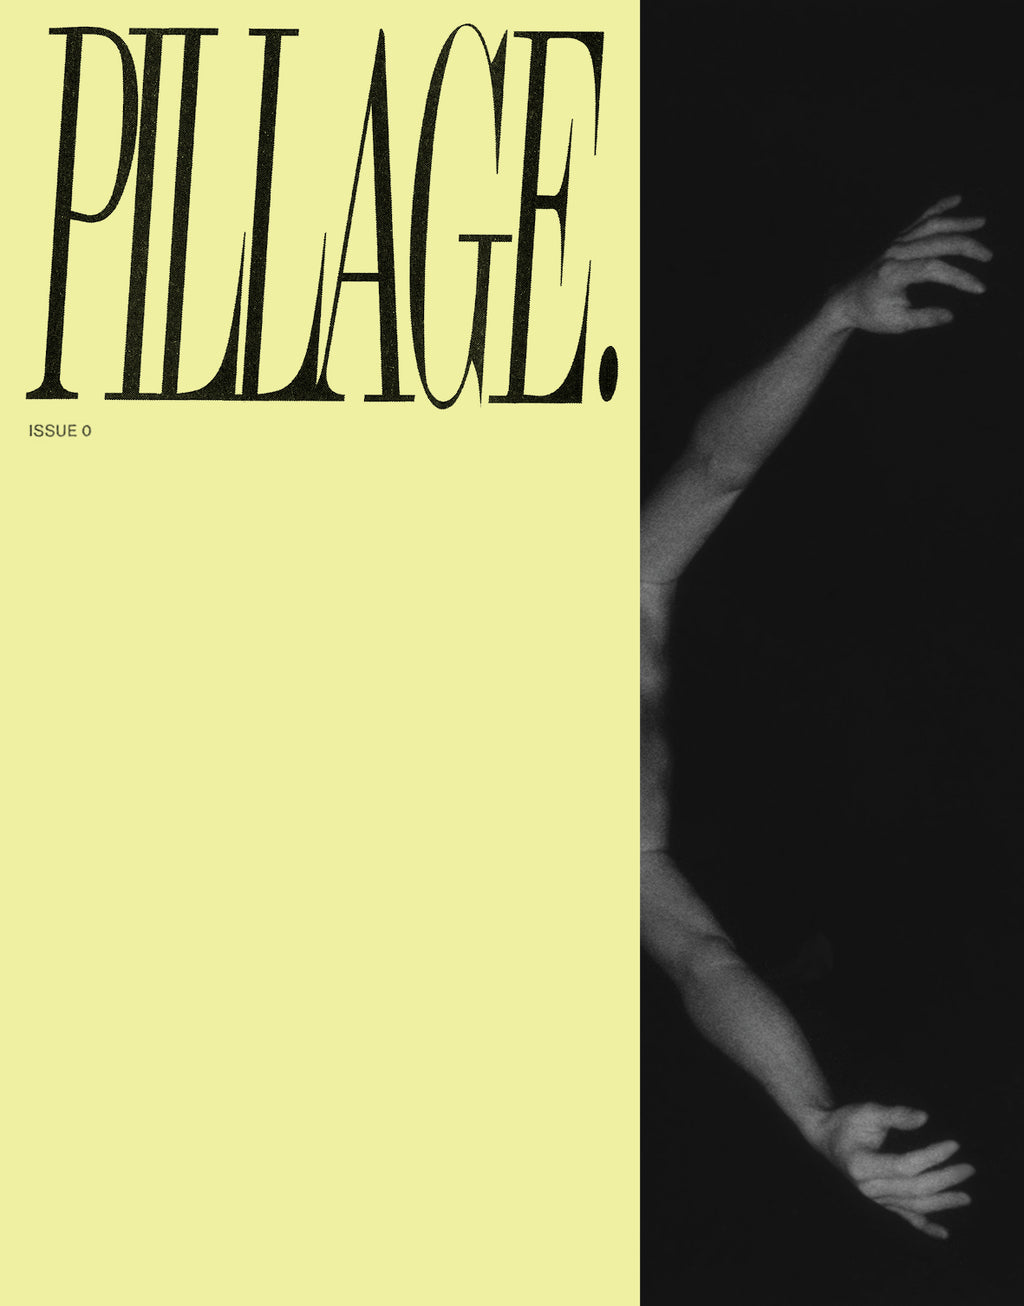 PILLAGE Issue 0